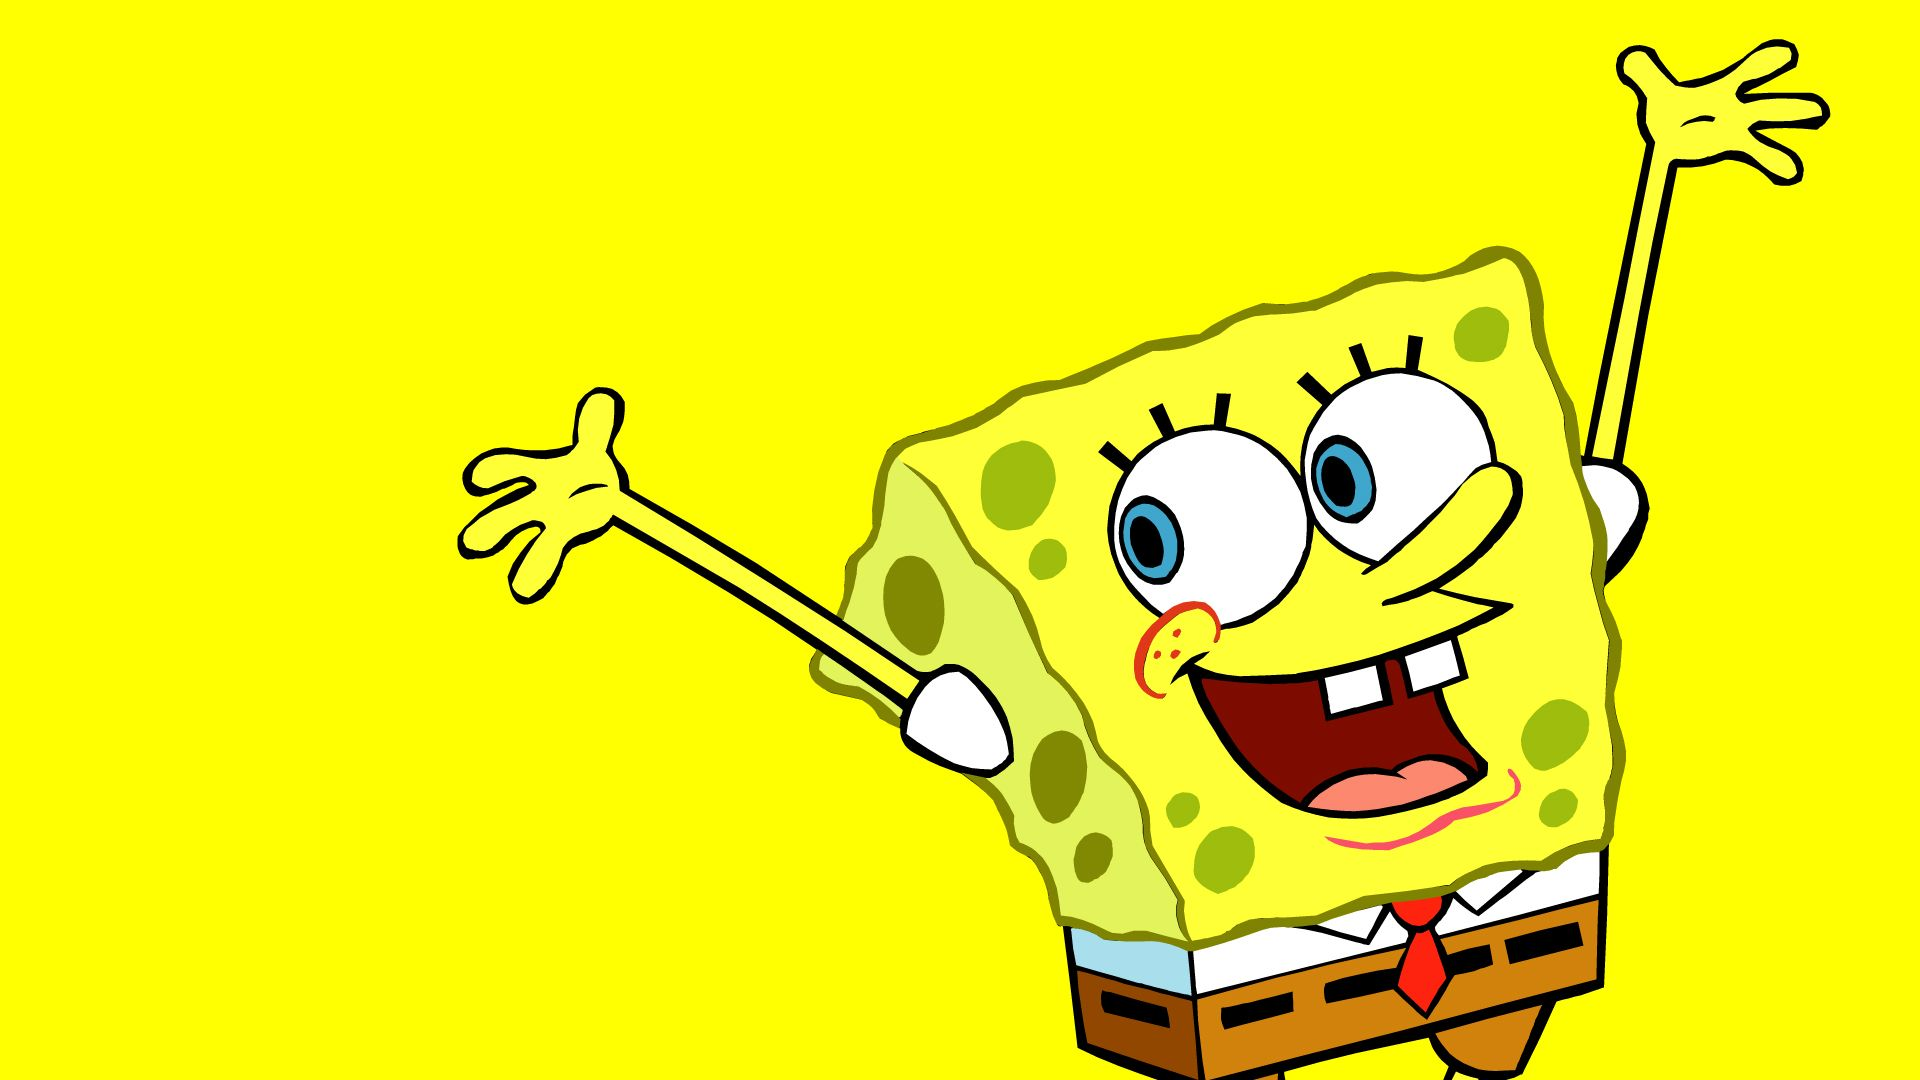 spongebob squarepants happy face wallpaper | spongebob | pinterest